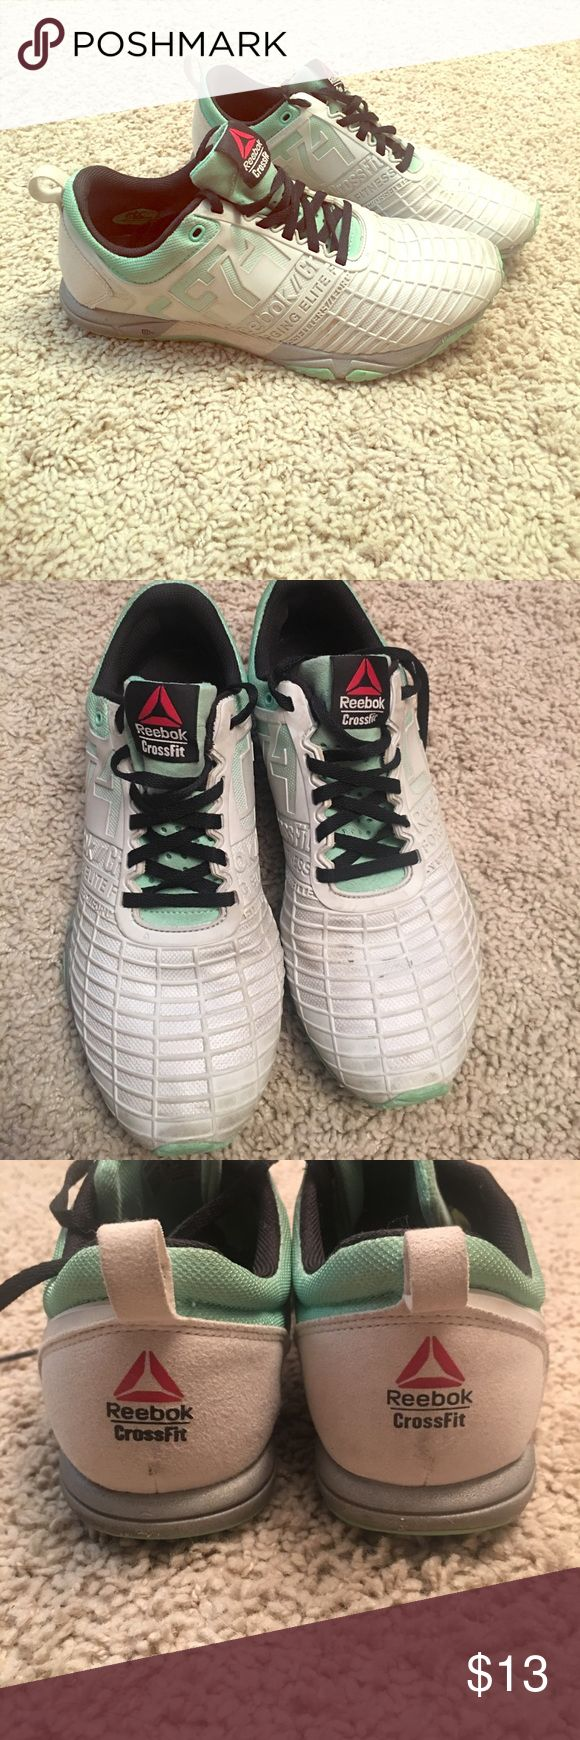 Reebok Crossfit Sprint Tennis Shoes Awesome shoes for a crossfitter or runner. Size 7.5. Good used conditions. Wear is shown in pics. Reebok Shoes Sneakers